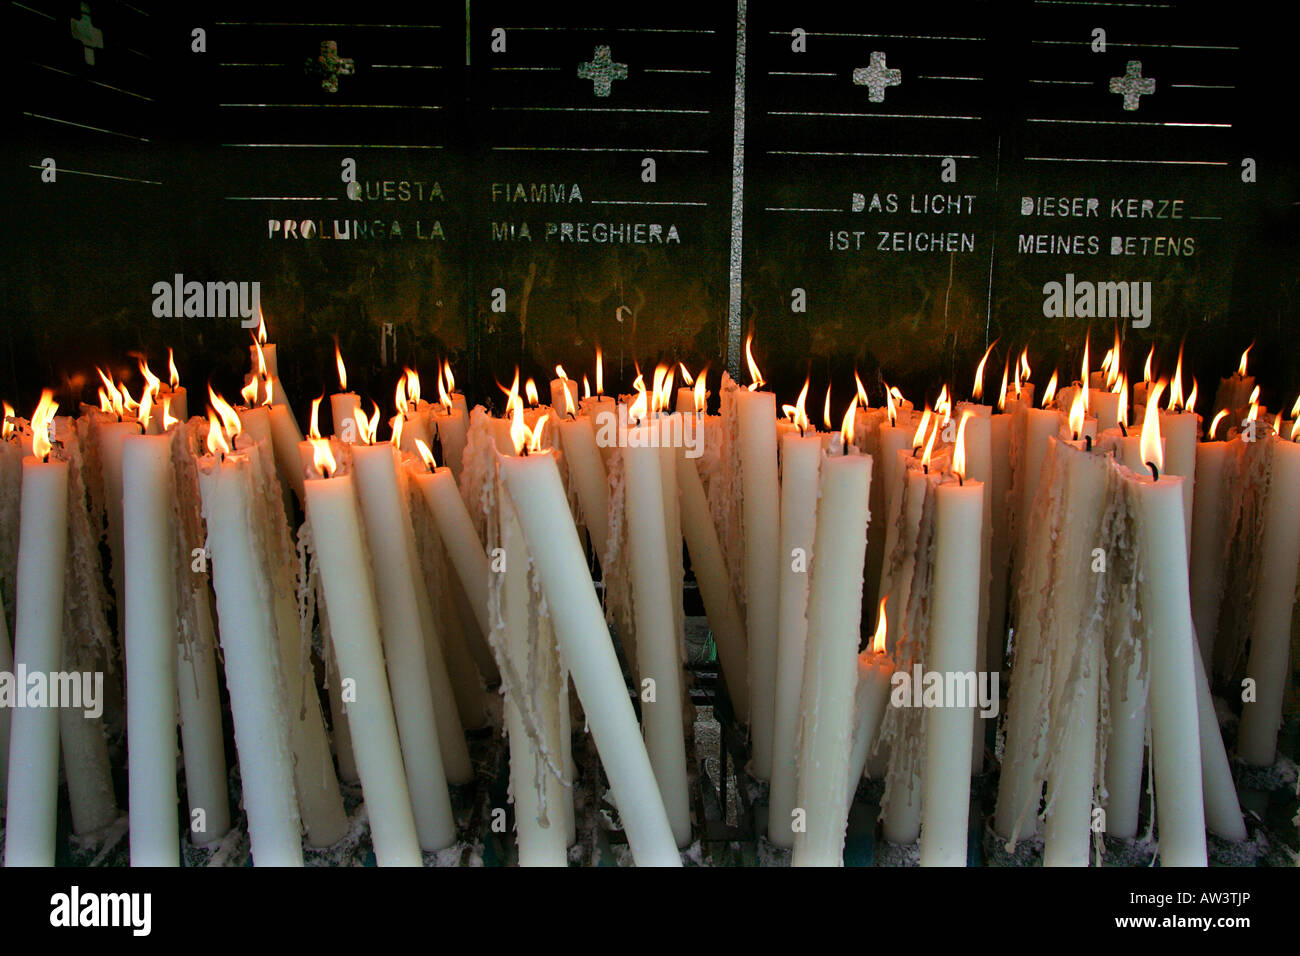 Candles burning to remember loved ones at Lourdes in France. - Stock Image